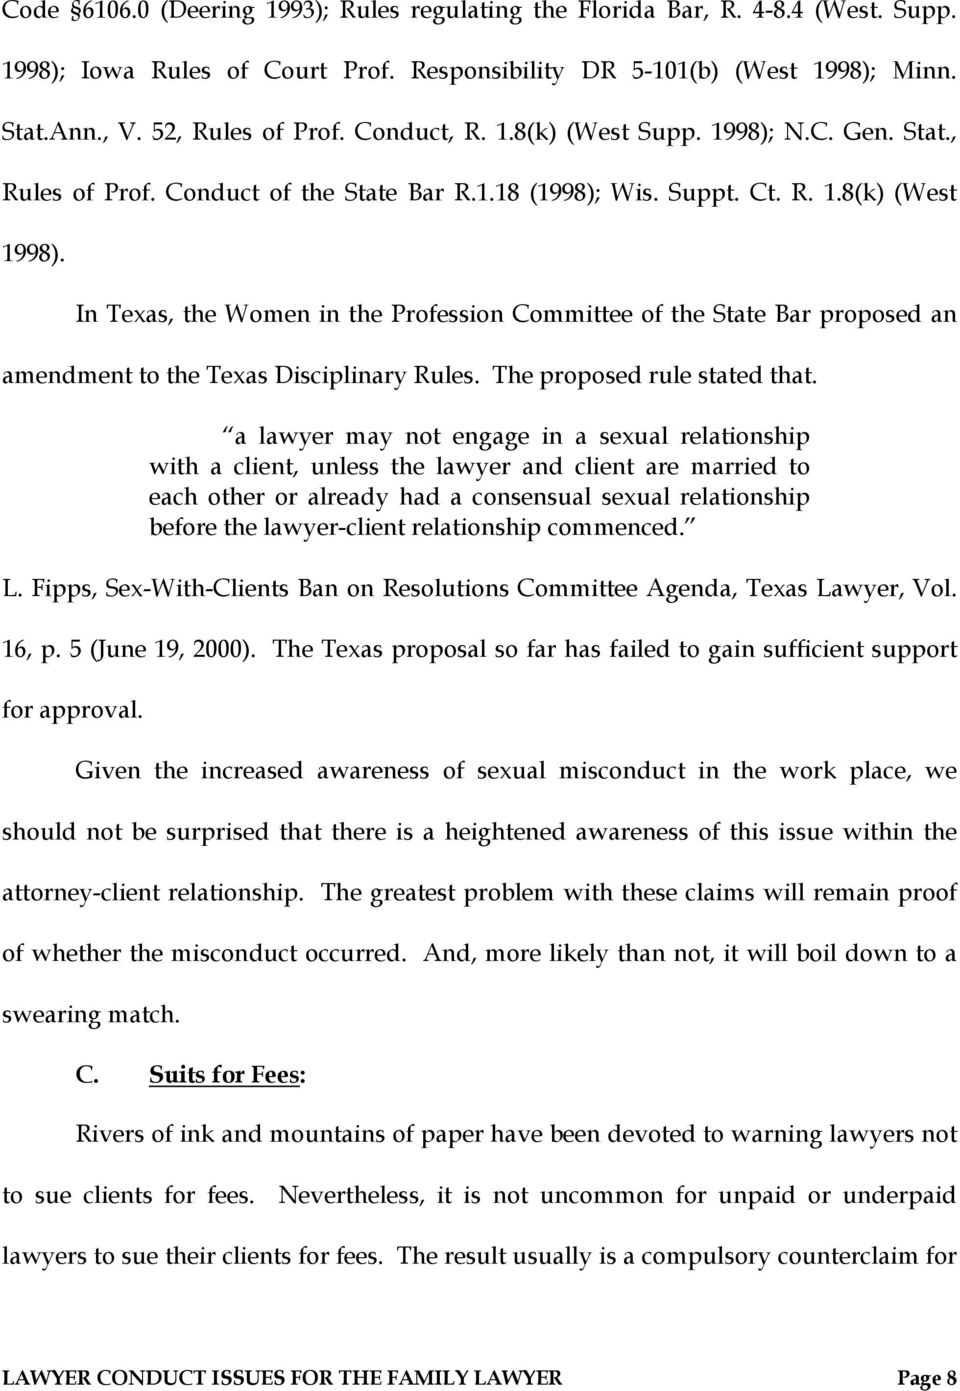 In Texas, the Women in the Profession Committee of the State Bar proposed an amendment to the Texas Disciplinary Rules. The proposed rule stated that.